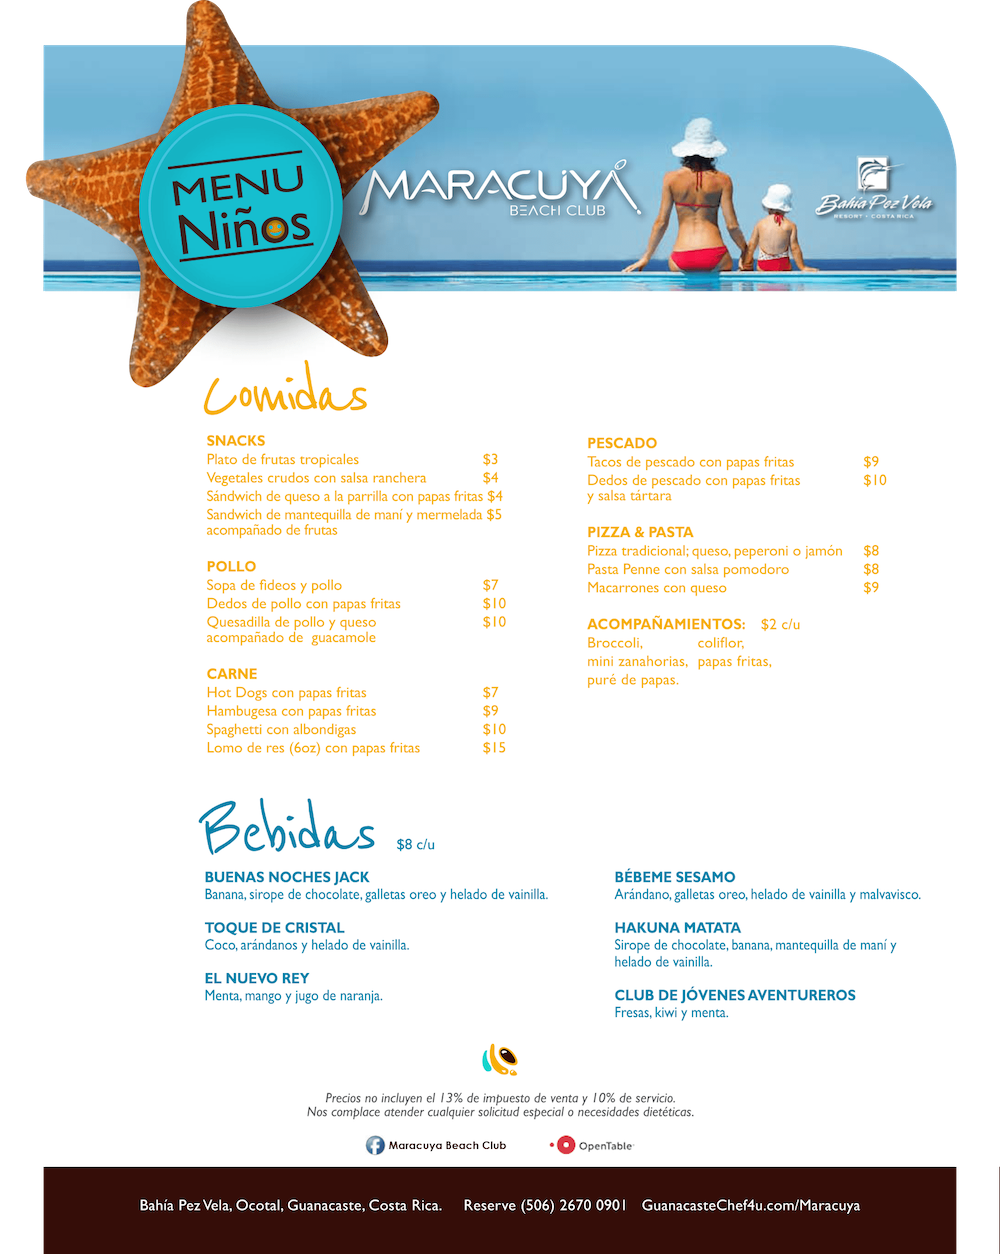 Menu niños Maracuya Beach Club Costa Rica